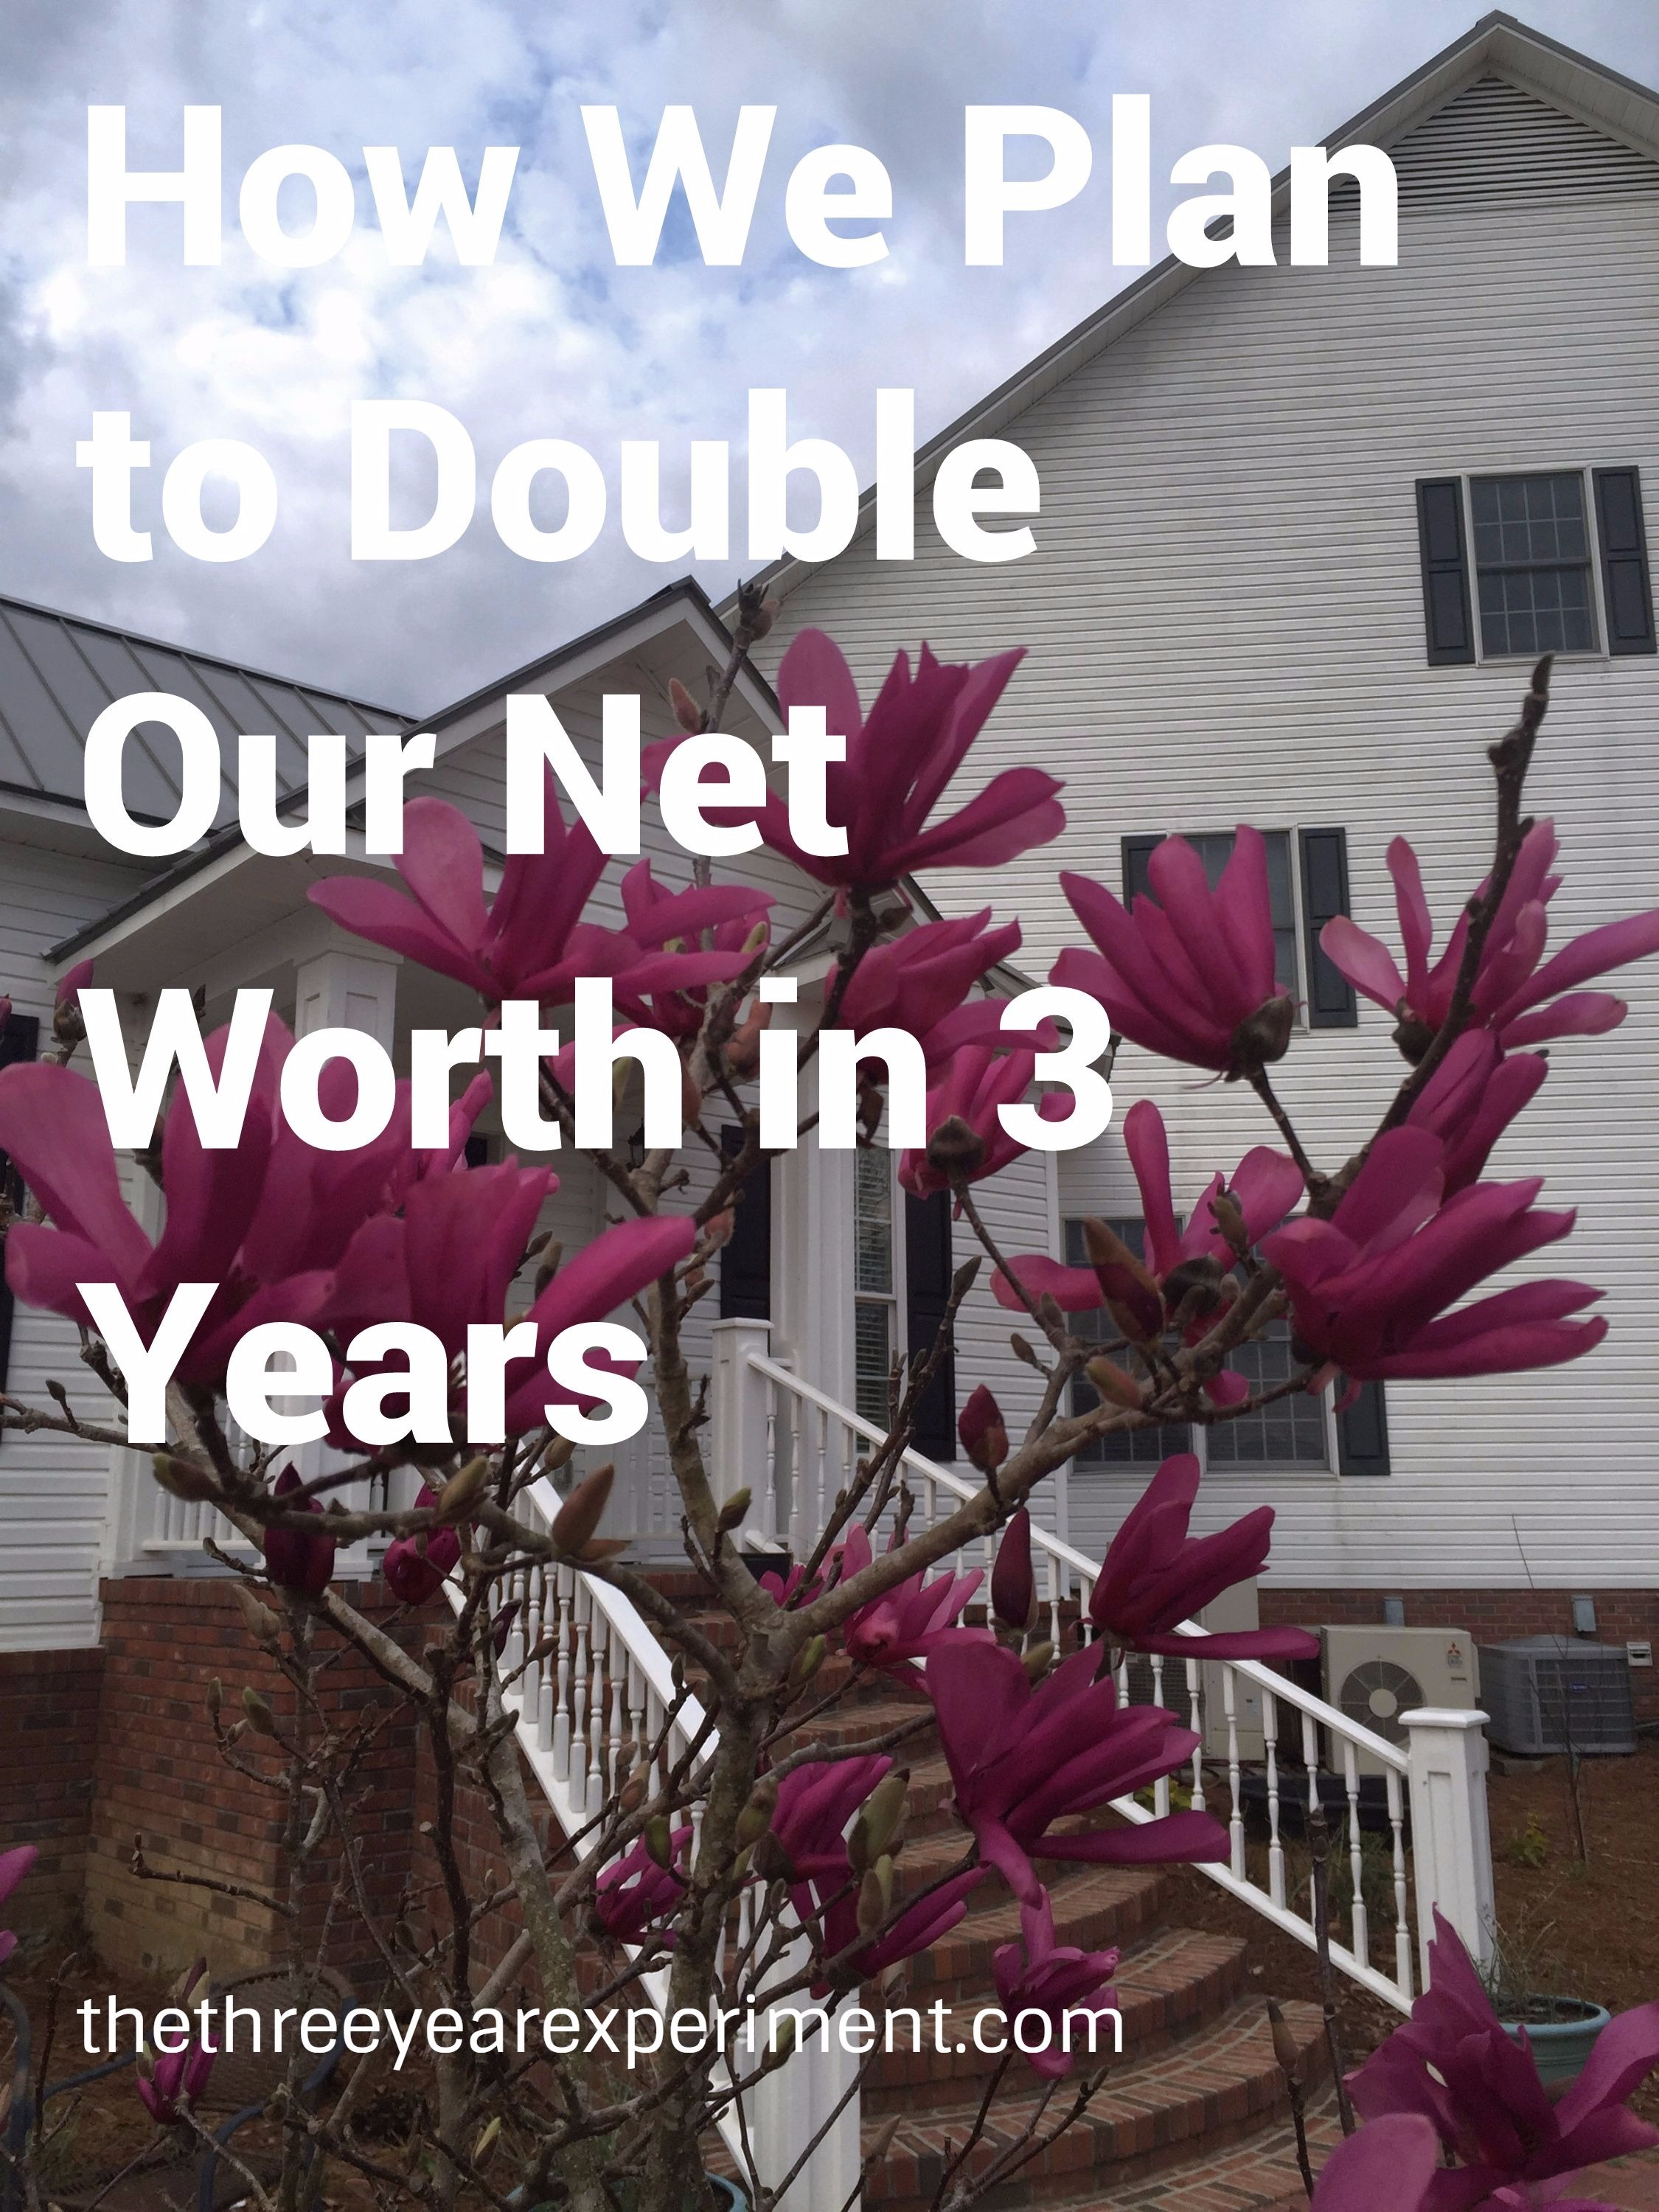 How We Plan to Double Our Net Worth in 3 Years